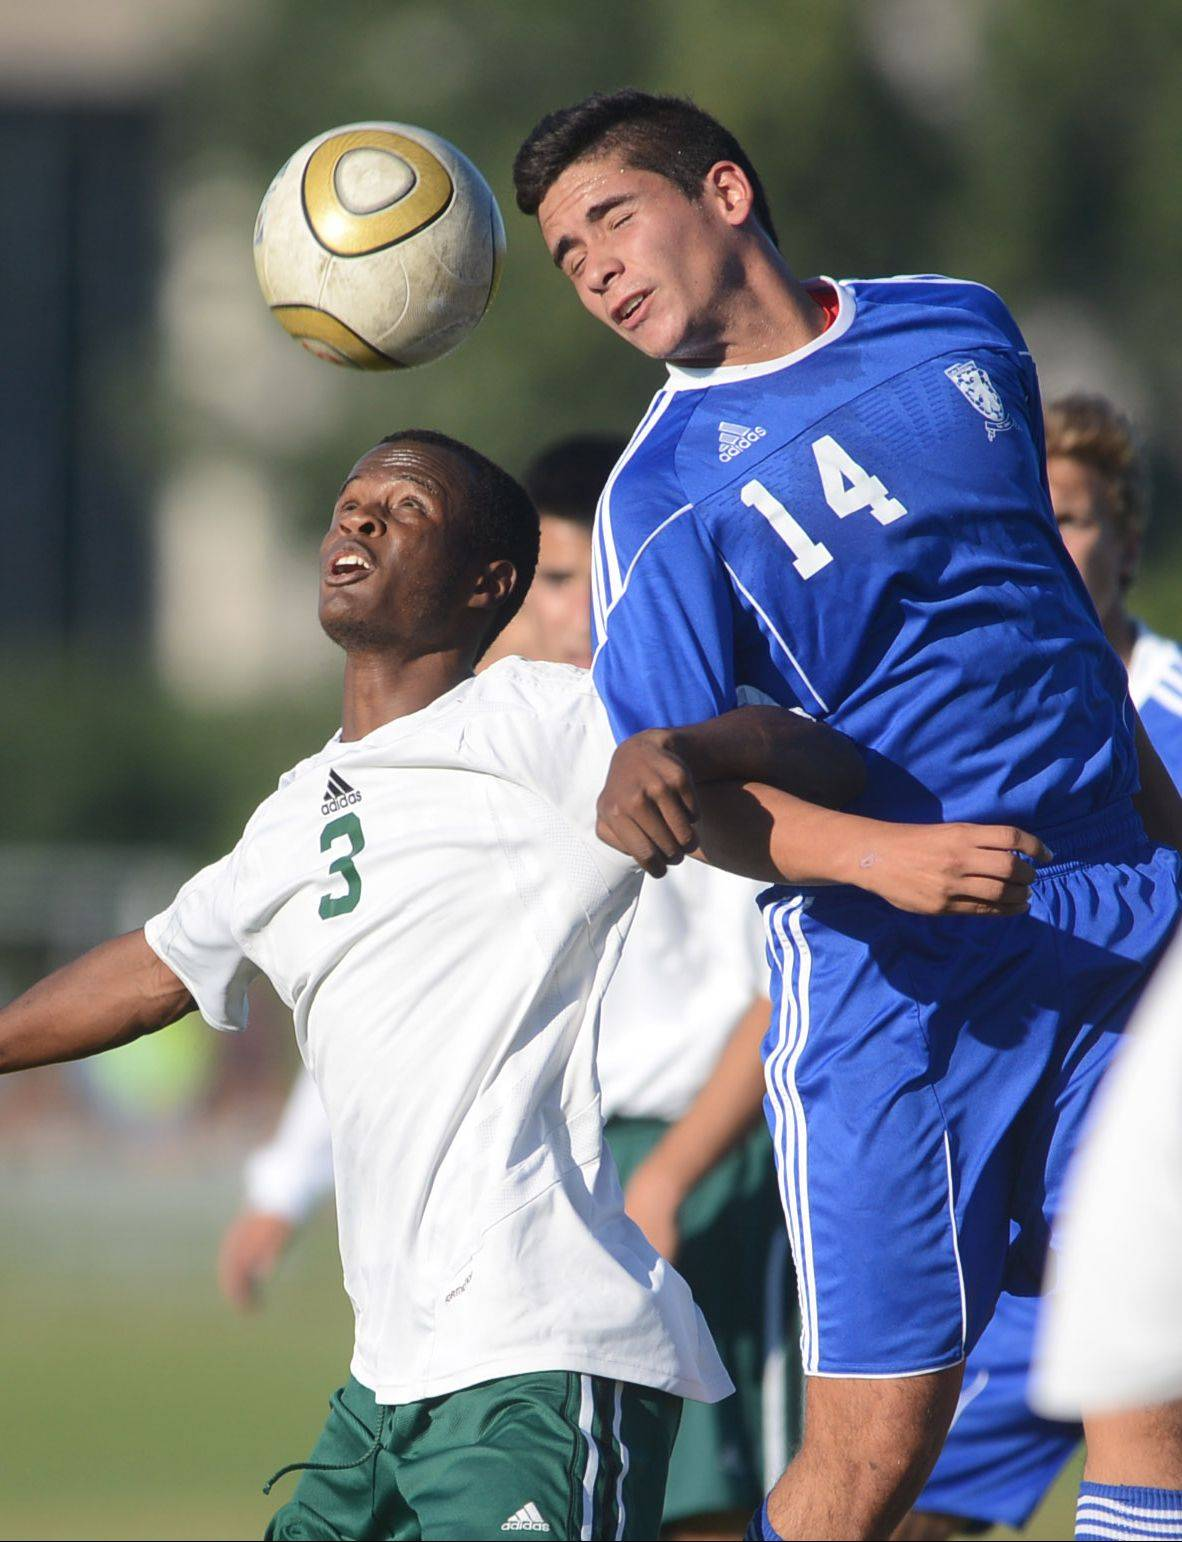 Stevenson's Kamal Starks (3) keeps a sharp eye on the ball under pressure from Lake Zurich's Miguel Hernandez on Monday.